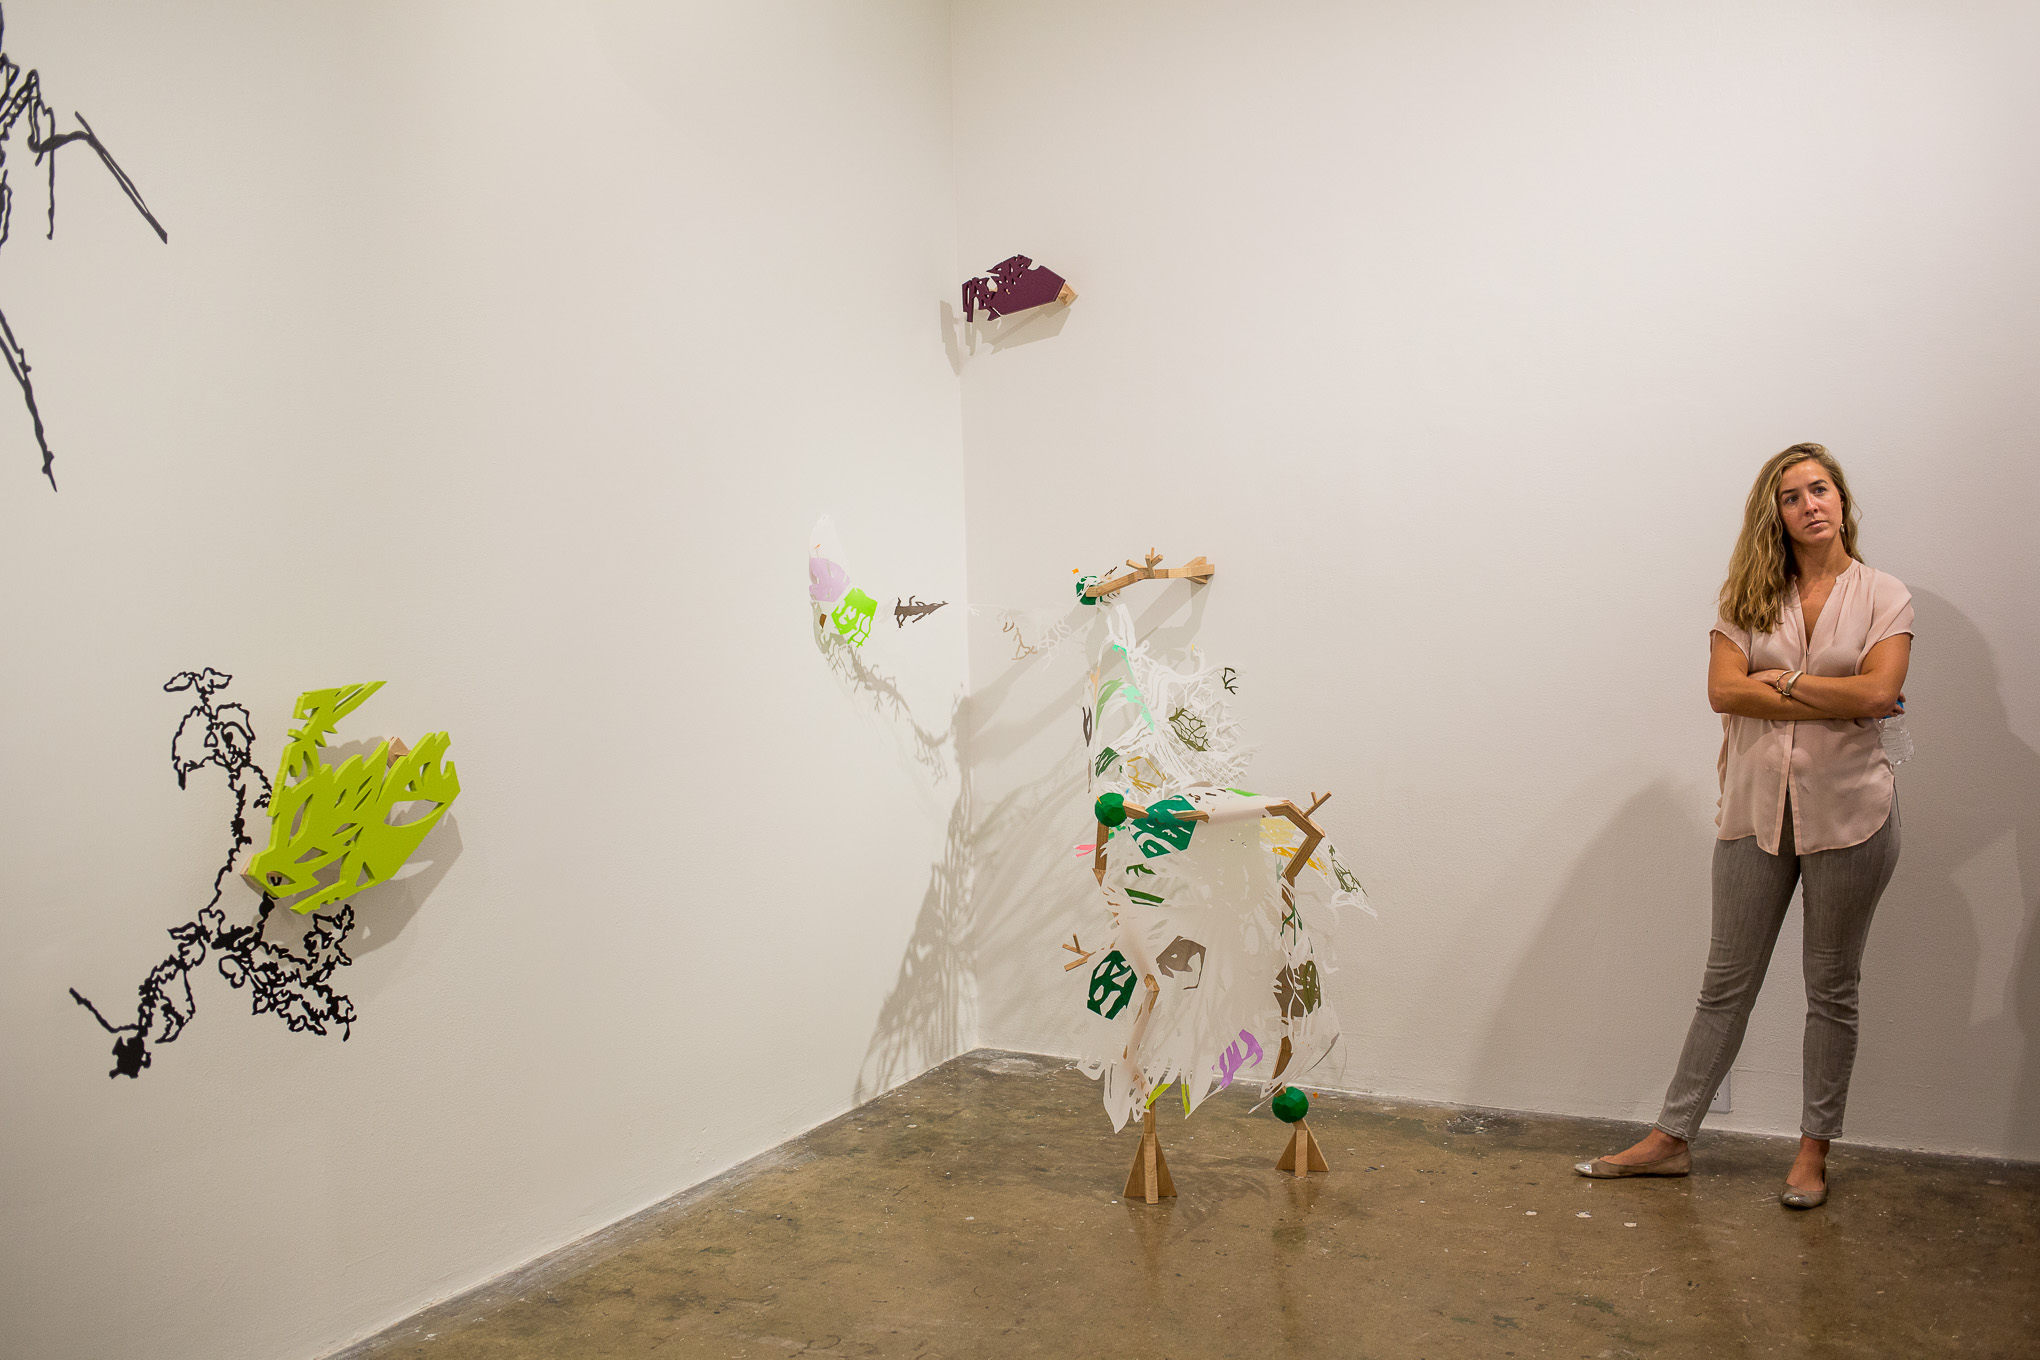 The artwork of Leigh Anne Lester stems from the concept of genetic engineering and cell structures.